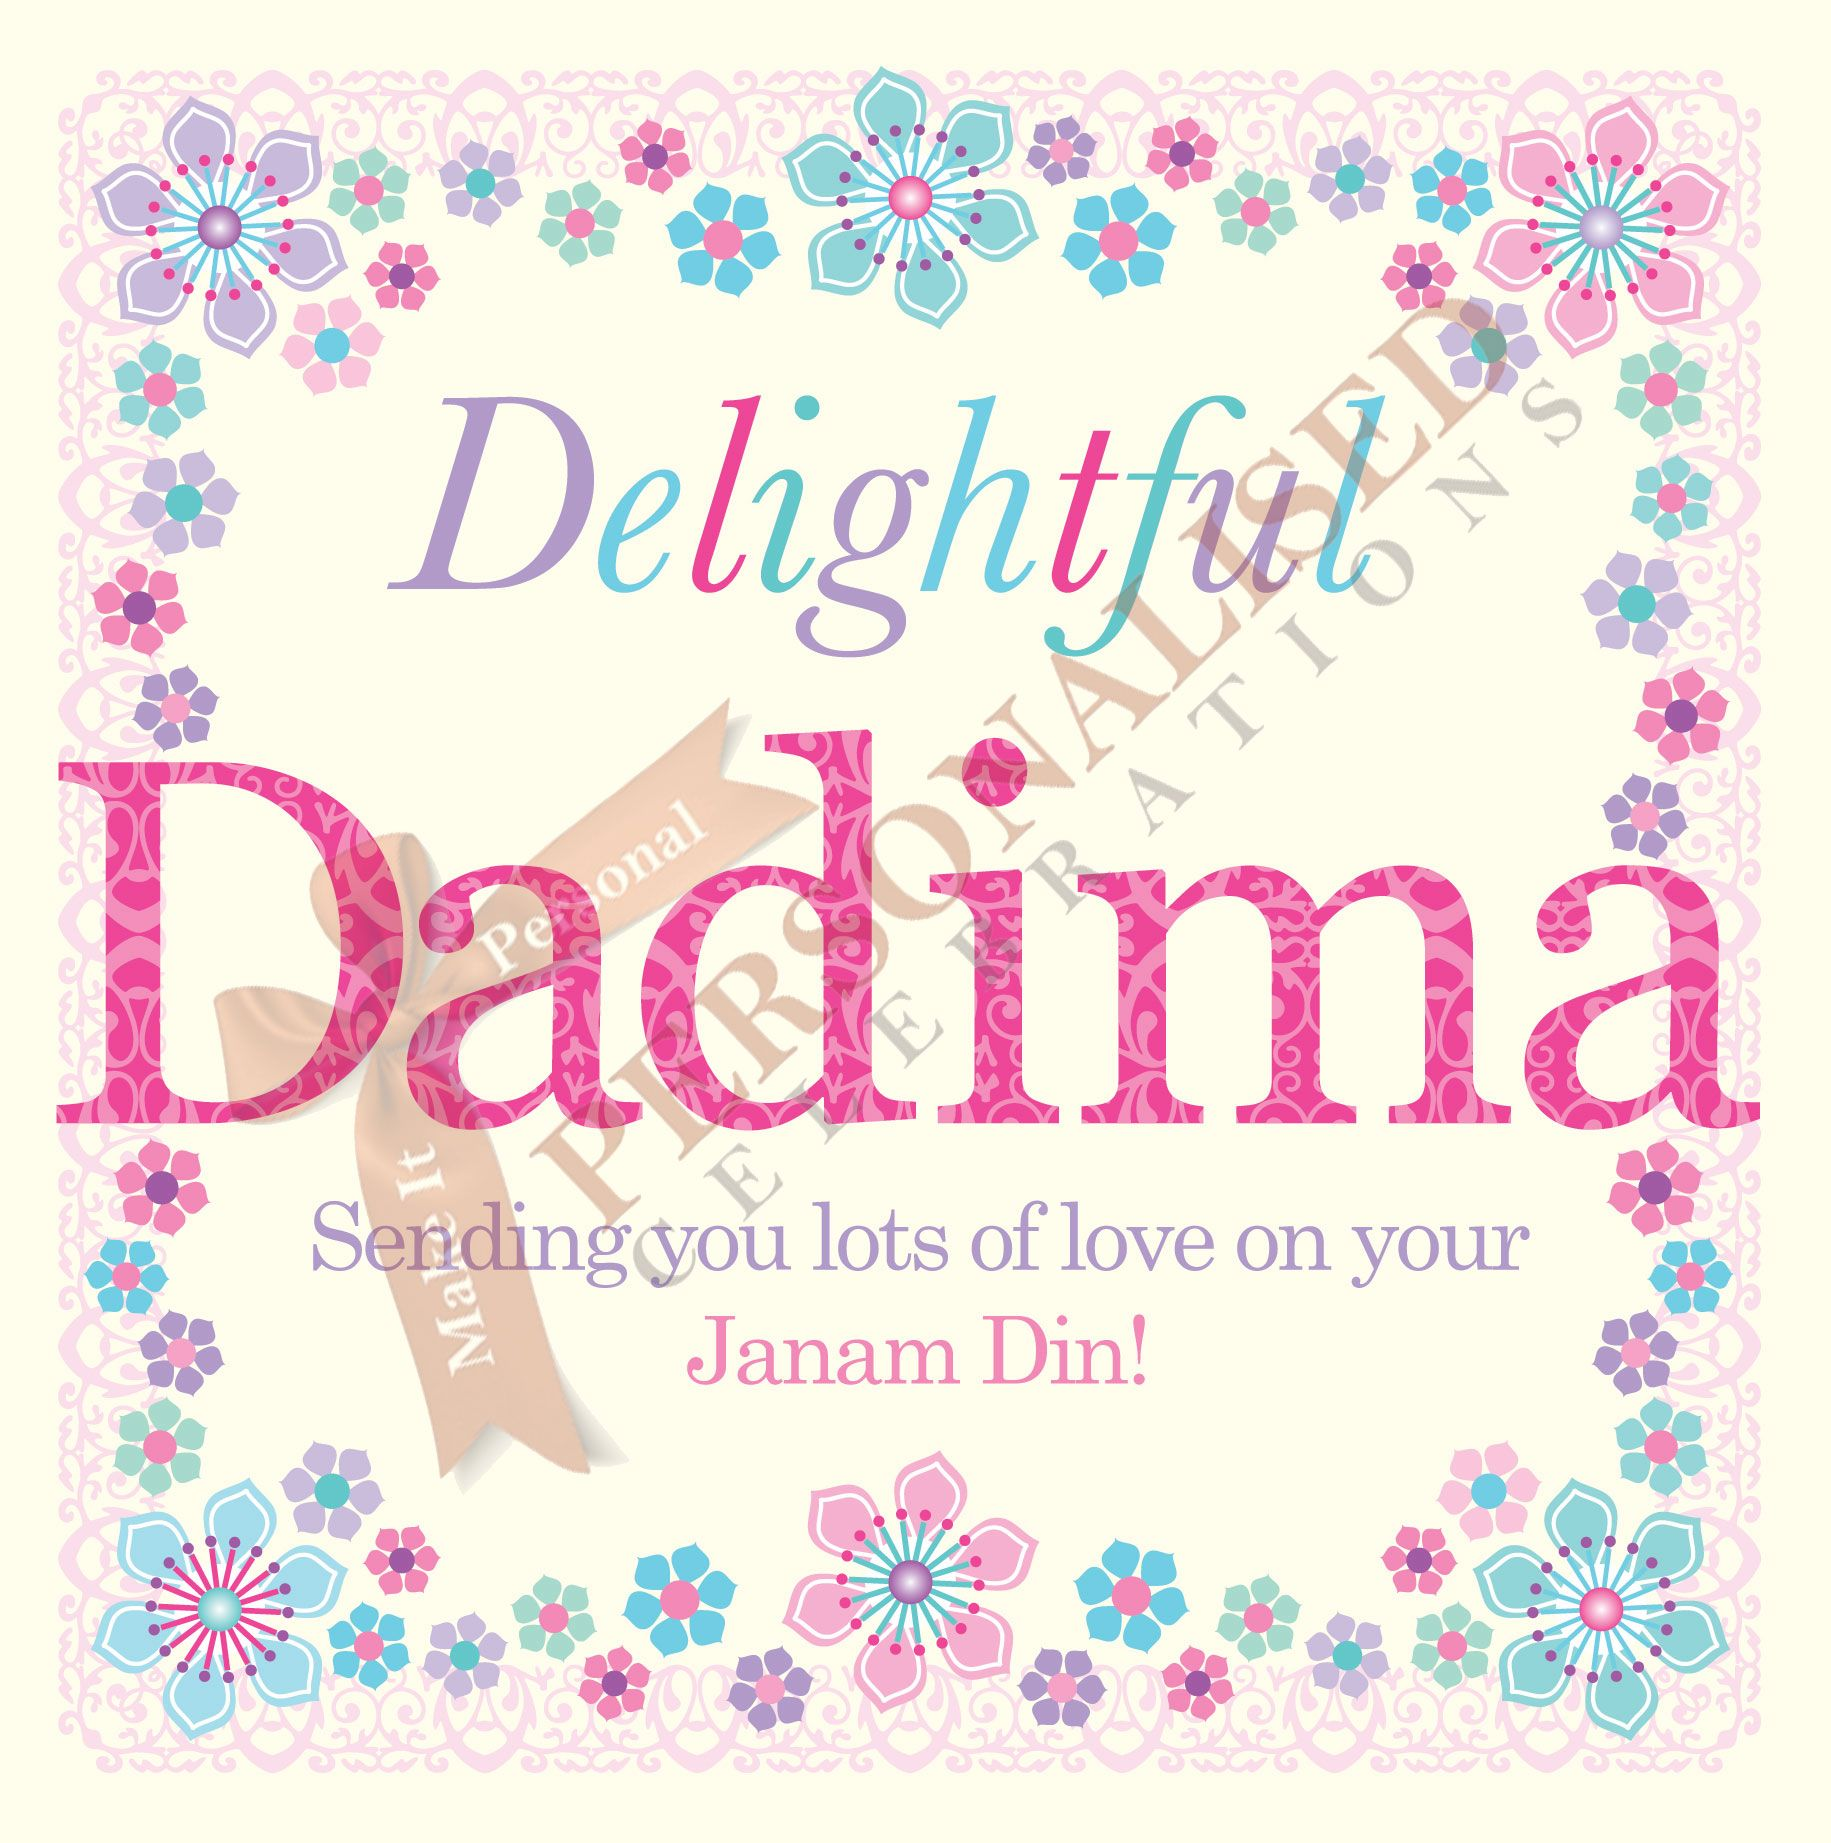 Dadima birthday card buy this card online only 199 at http dadima birthday card buy this card online only 199 at httppersonalisedcelebrations m4hsunfo Choice Image